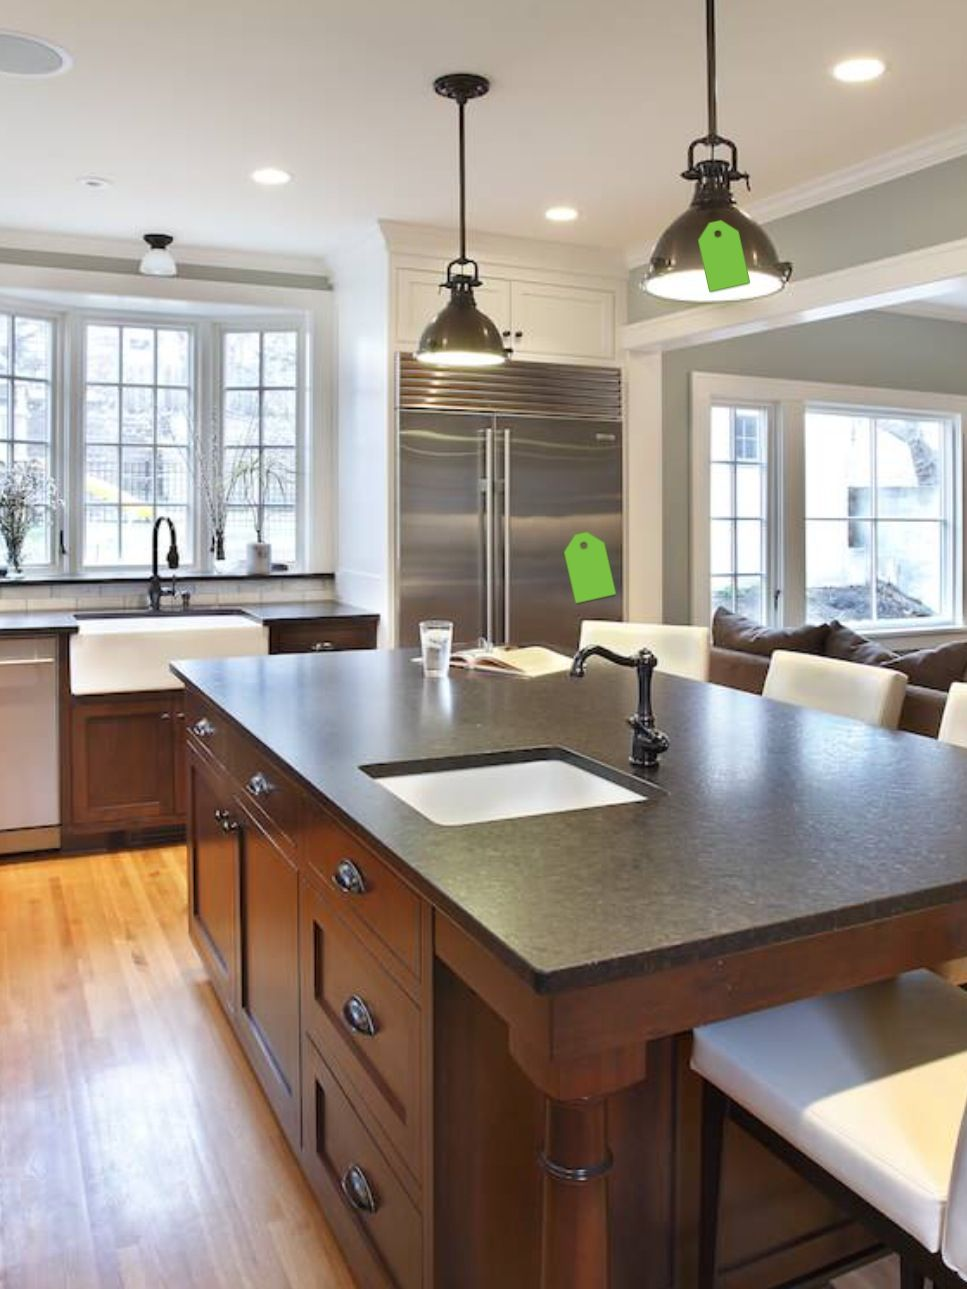 Great light fixtures apron sink and beautiful cabinets design